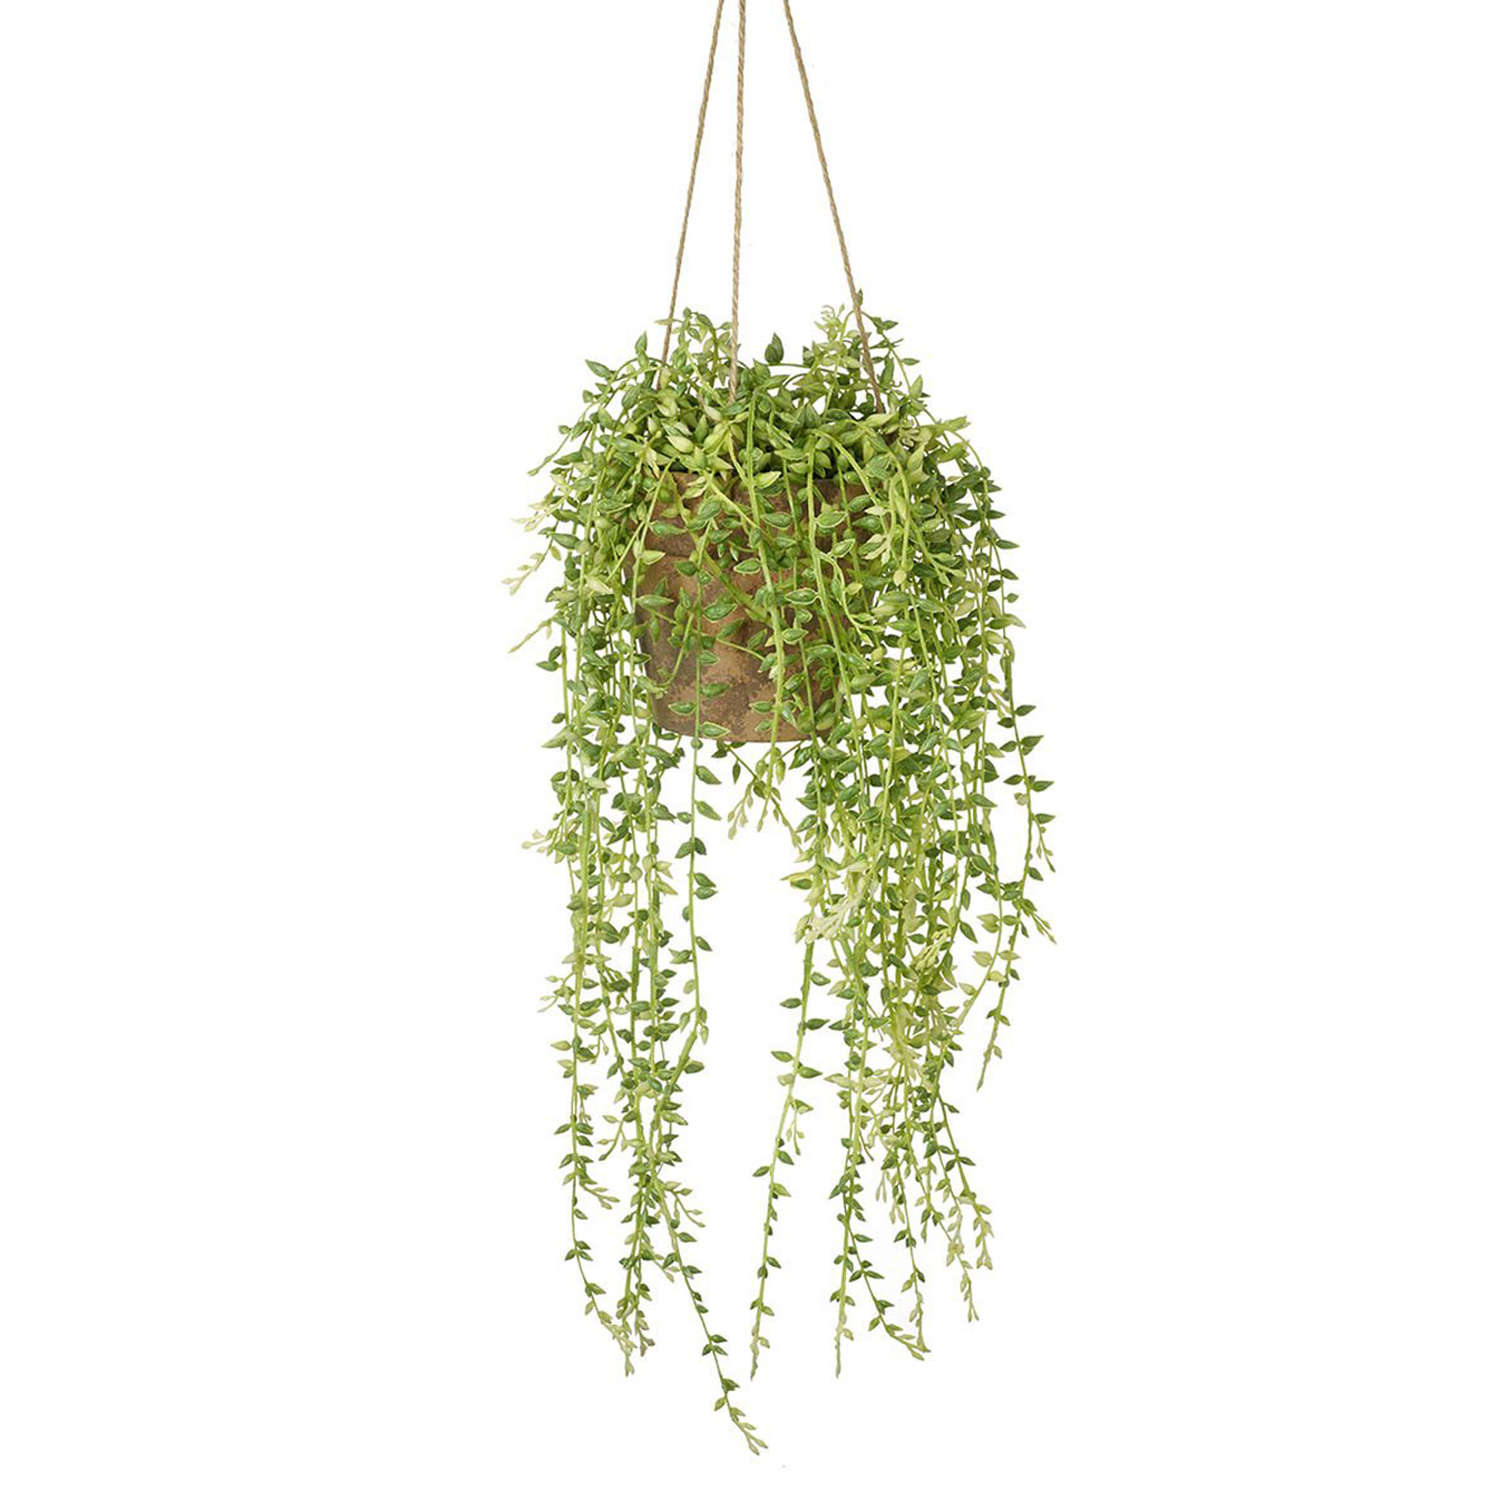 Potted hanging Senecio plant